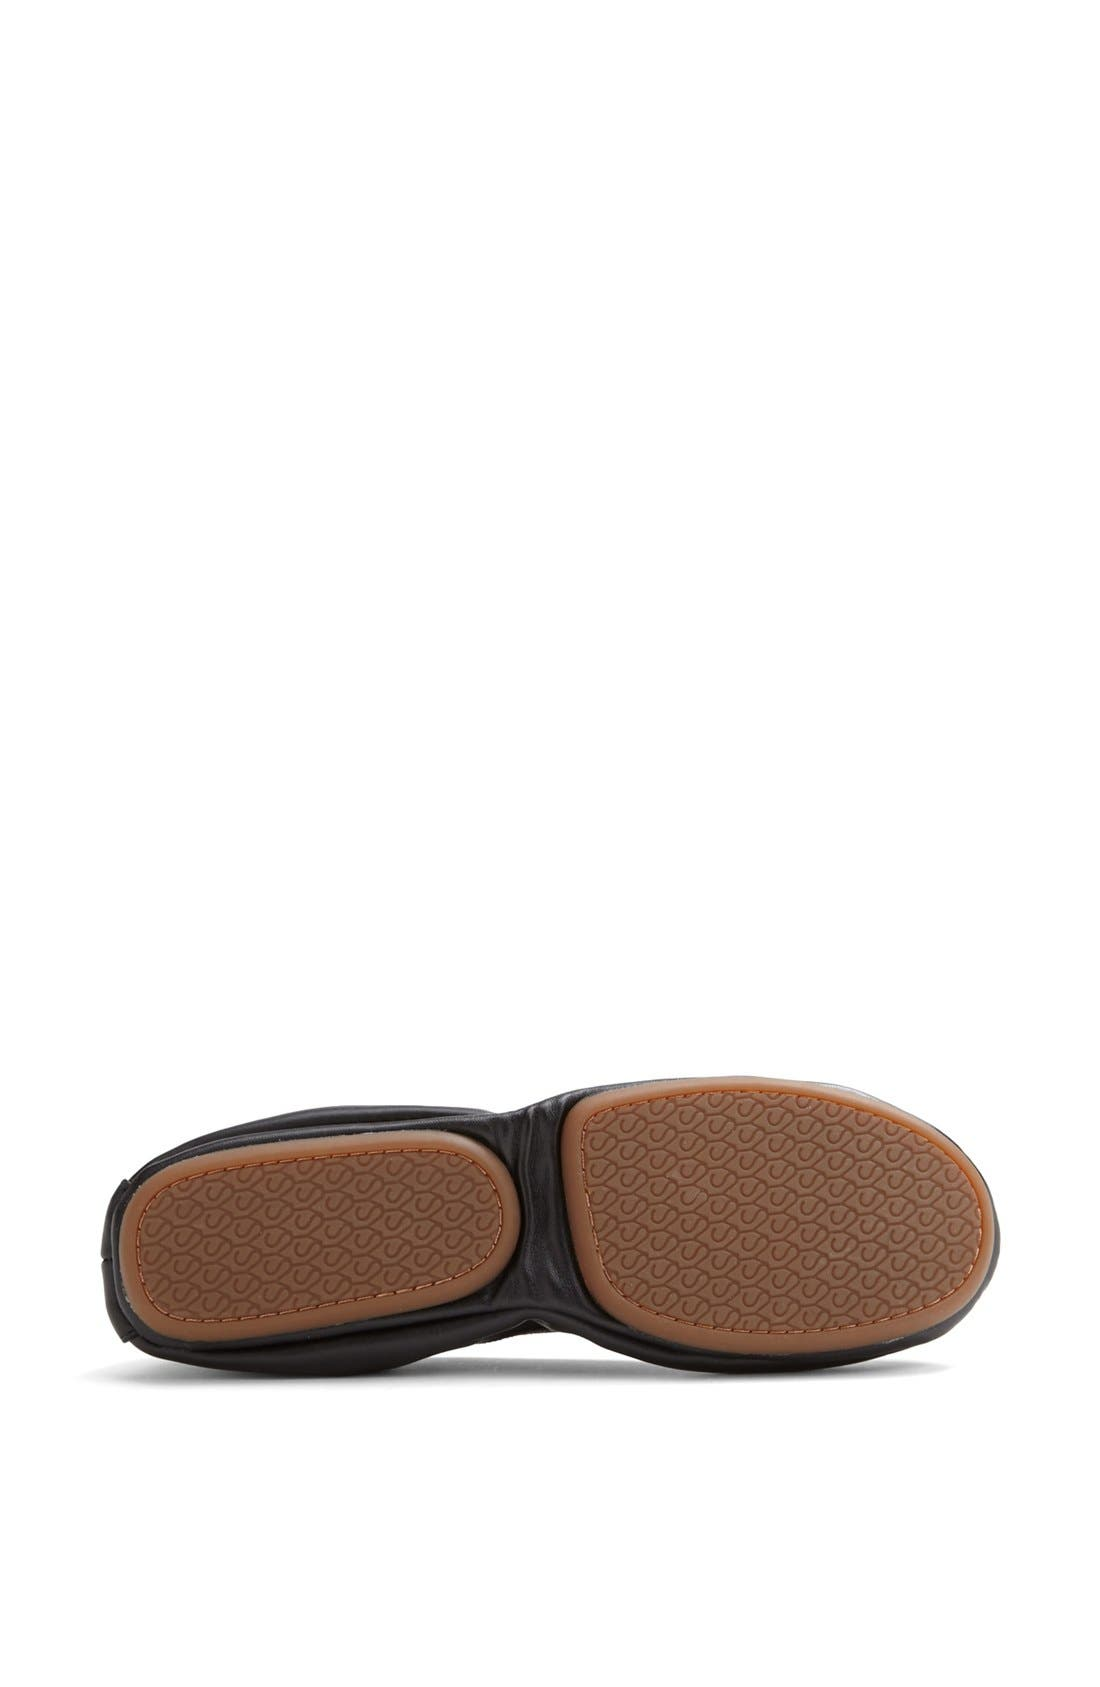 Foldable Ballet Flat,                             Alternate thumbnail 4, color,                             001